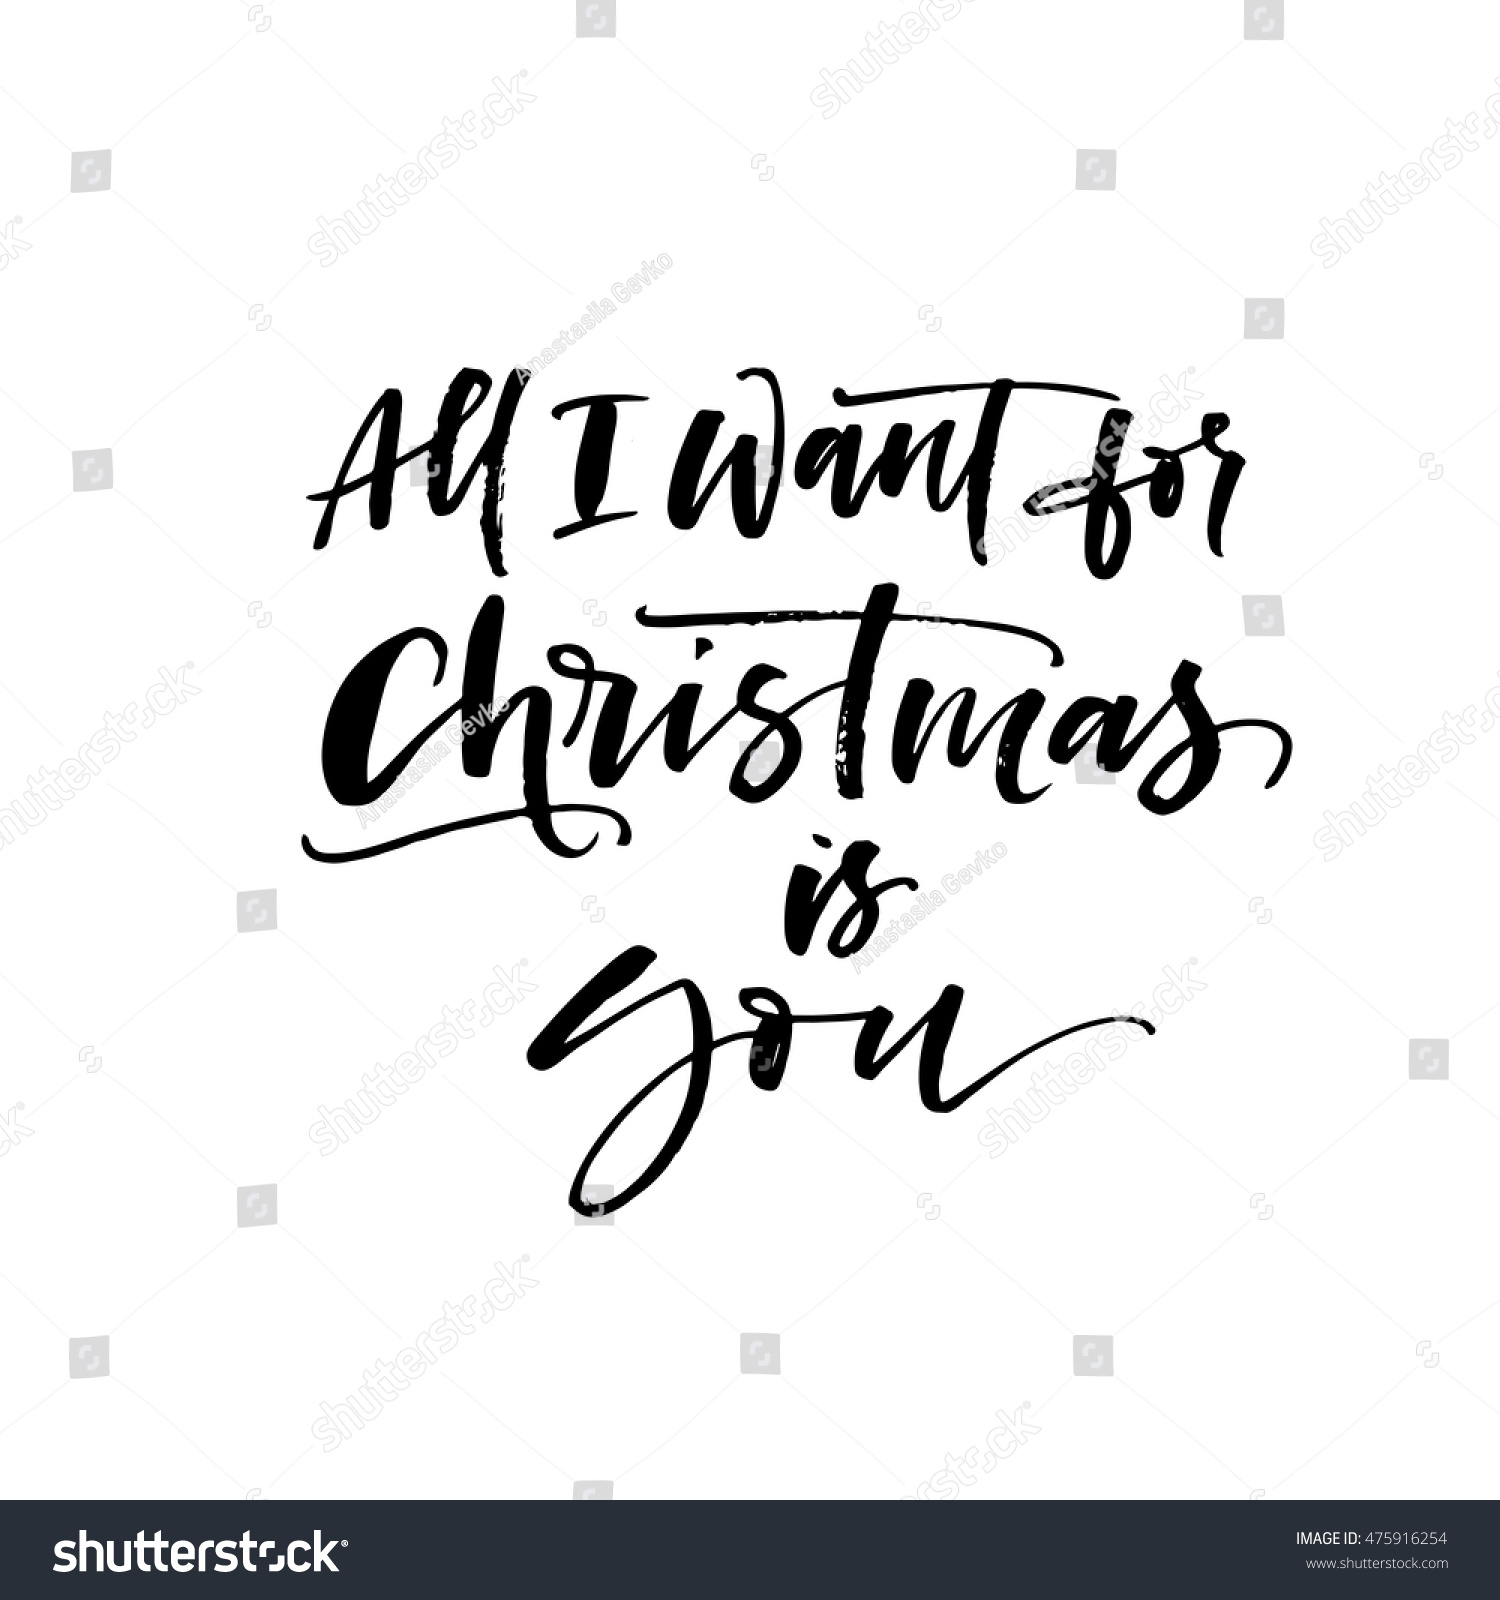 All Want Christmas You Card Hand Stock Vector (Royalty Free ...